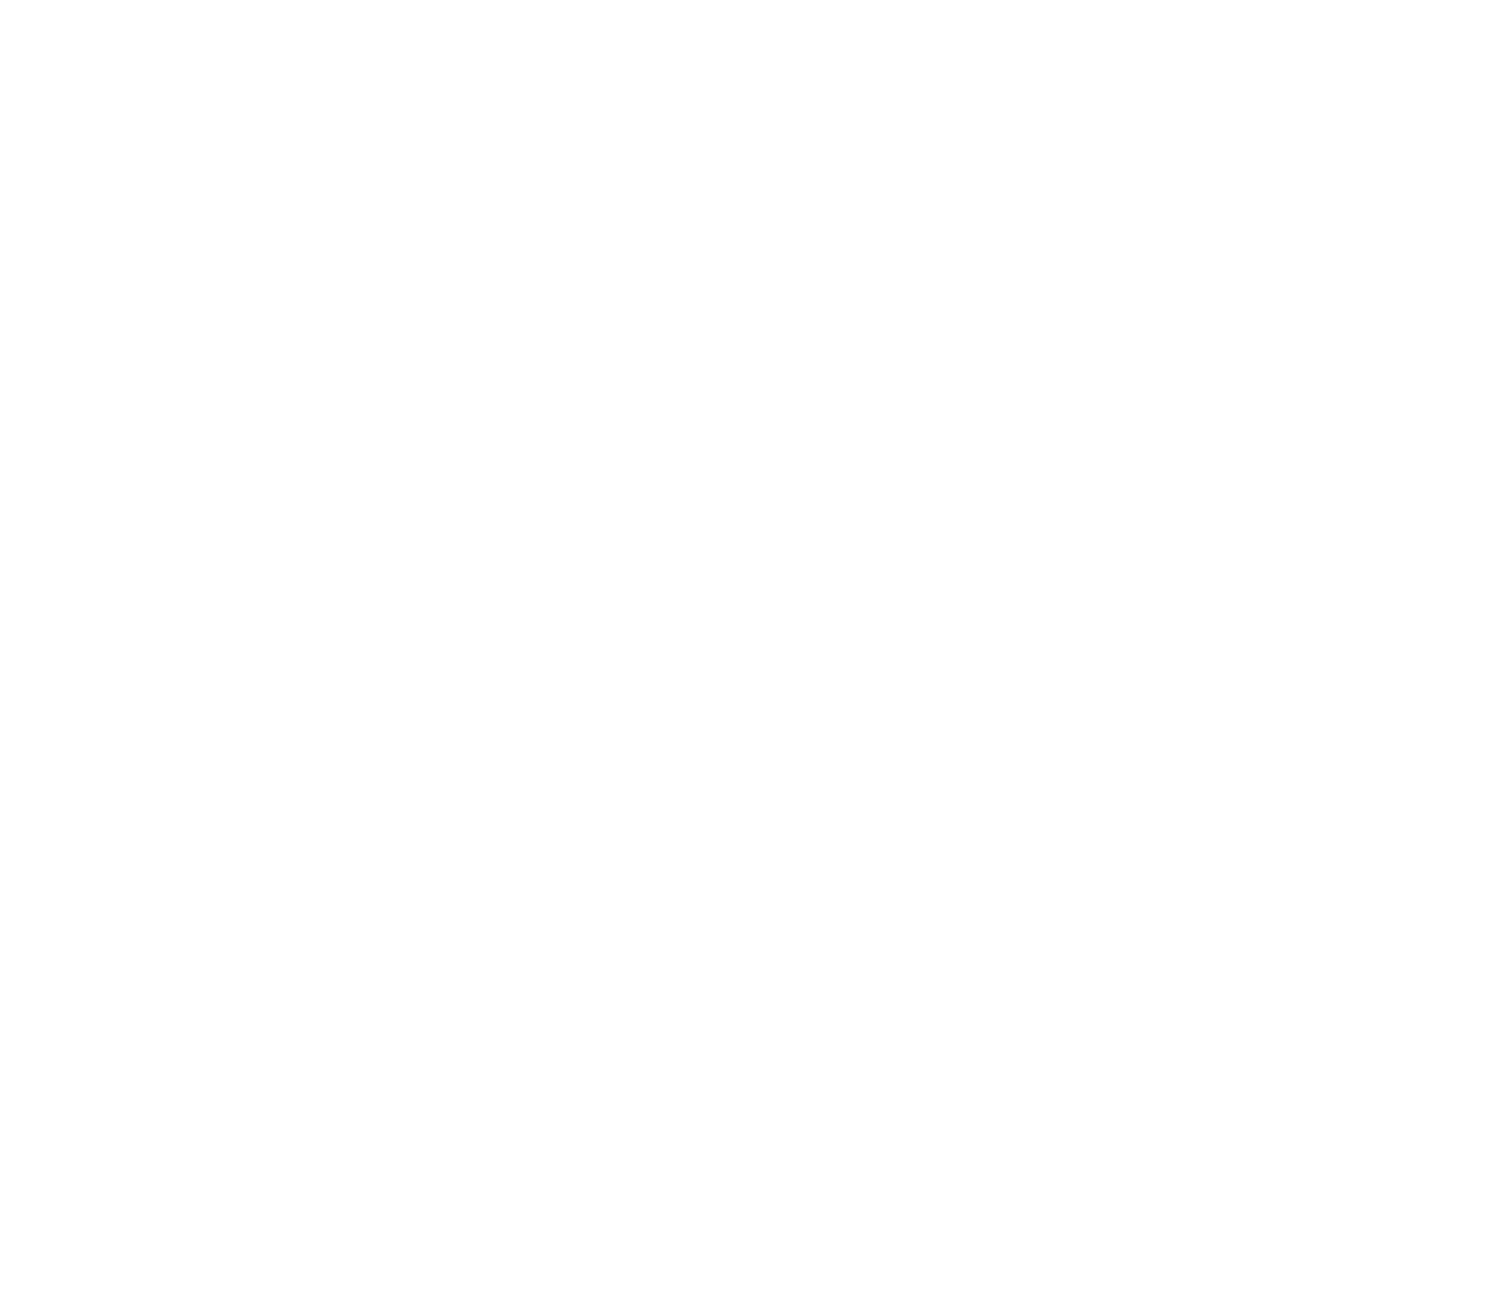 More Than a Londoner